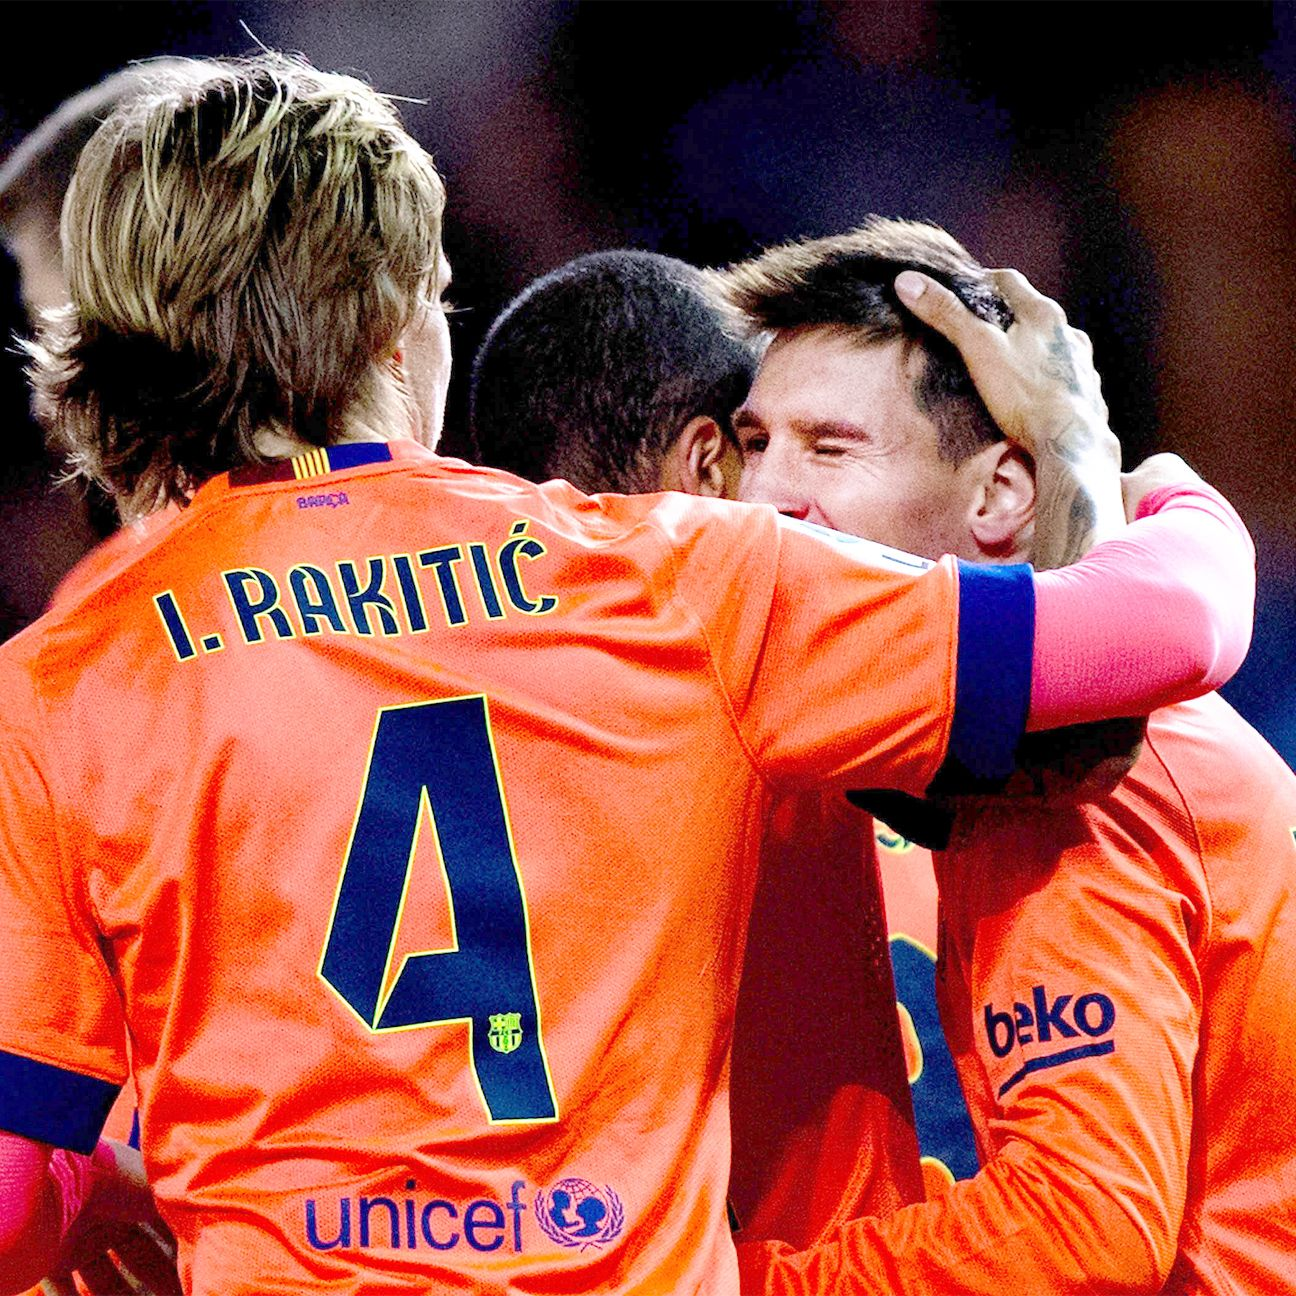 Ivan Rakitic and Messi proved quite the playmaking pair, as they connected three times against Deportivo.